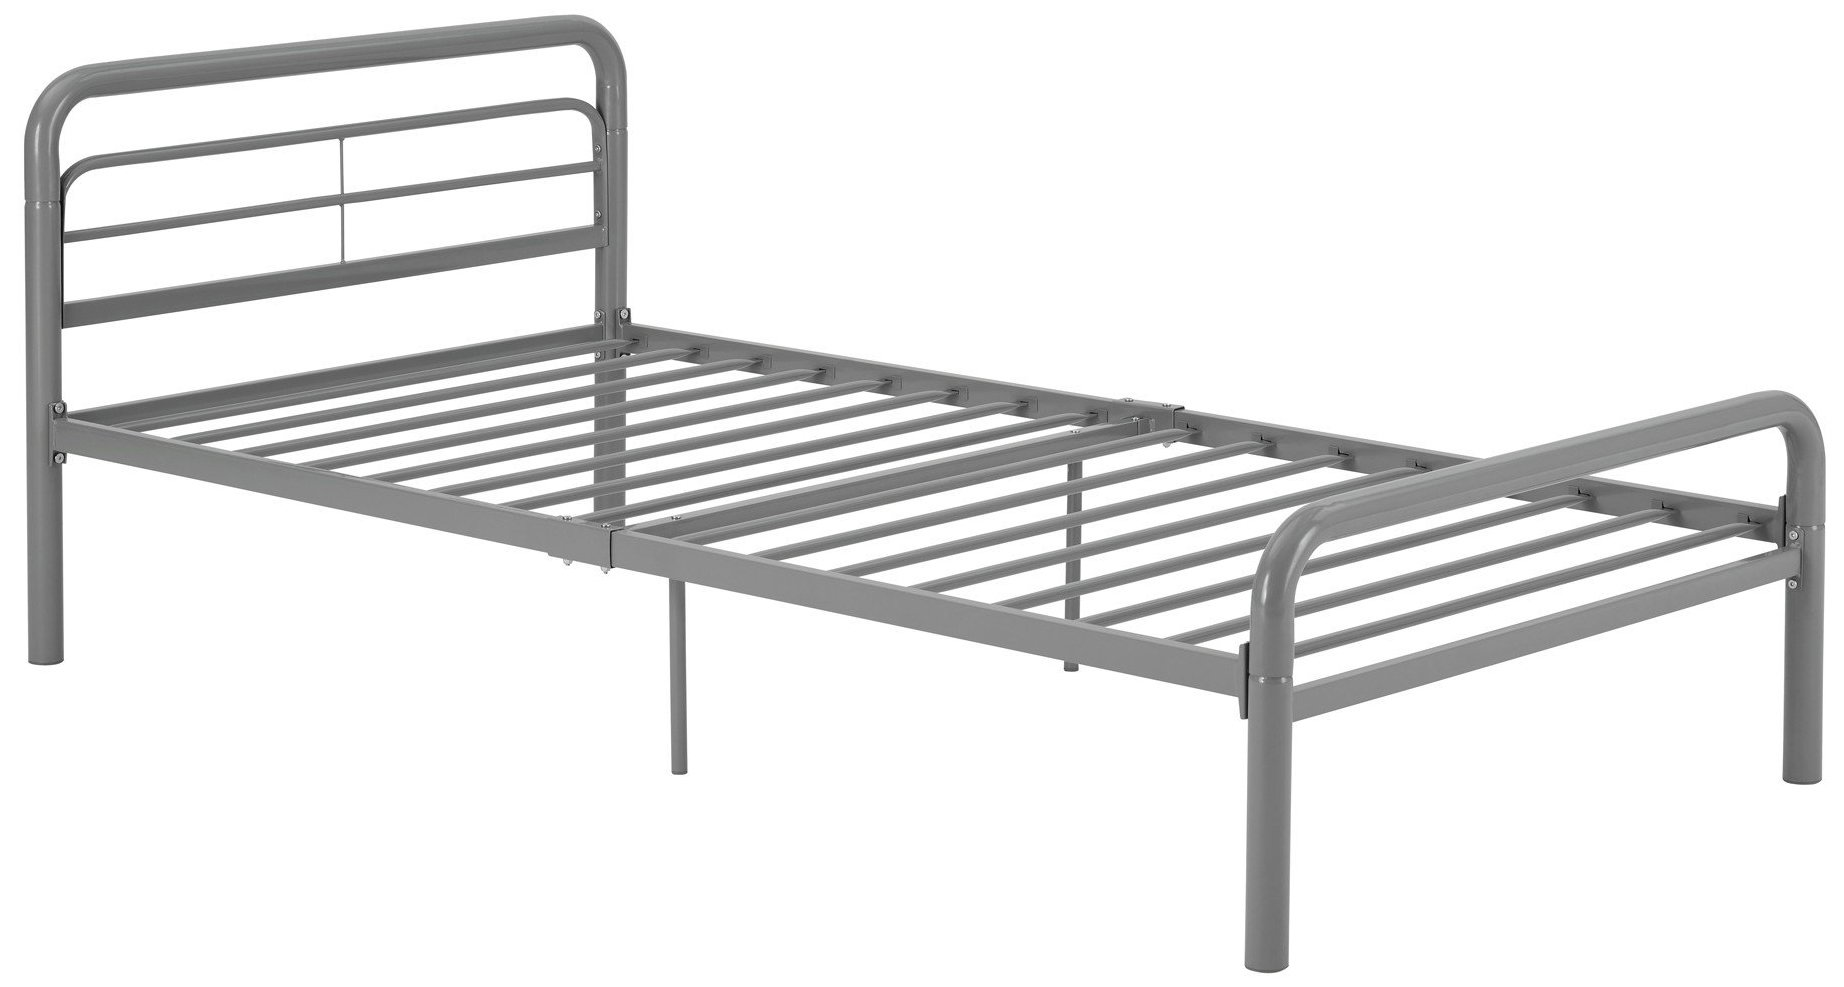 DHP Metal Bed with Round Tubing, Modern and Simple Design, Twin, Silver